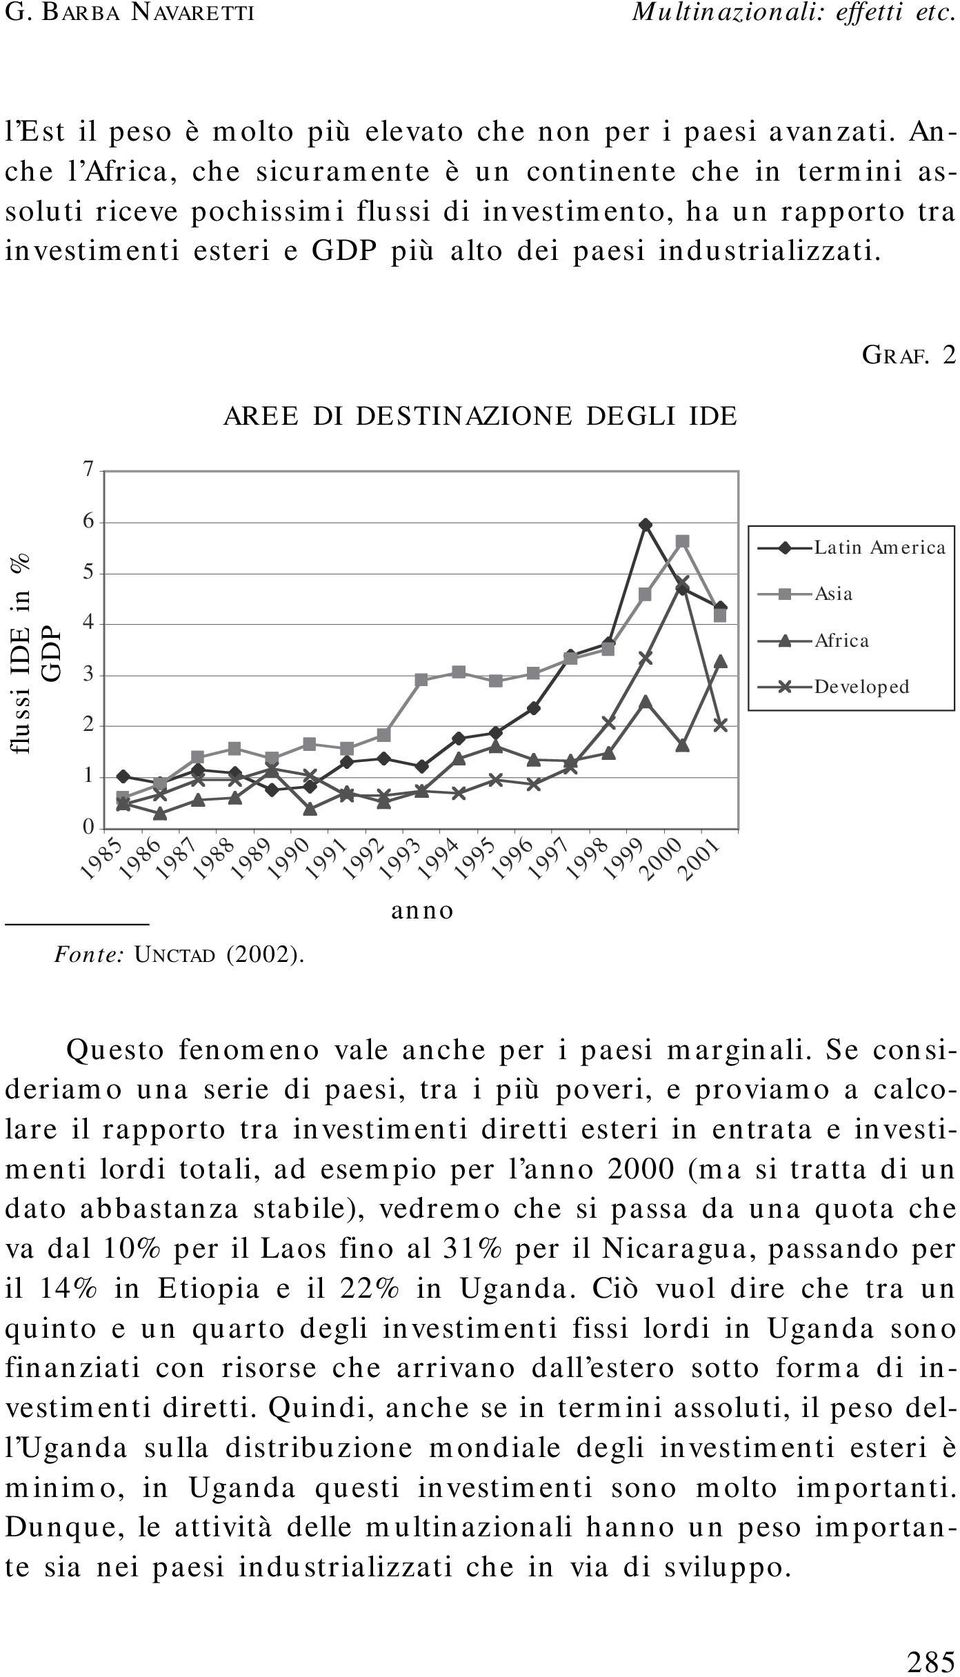 flussi IDE in % GDP 7 6 5 4 3 2 1 0 1985 1986 Fonte: UNCTAD (2002).